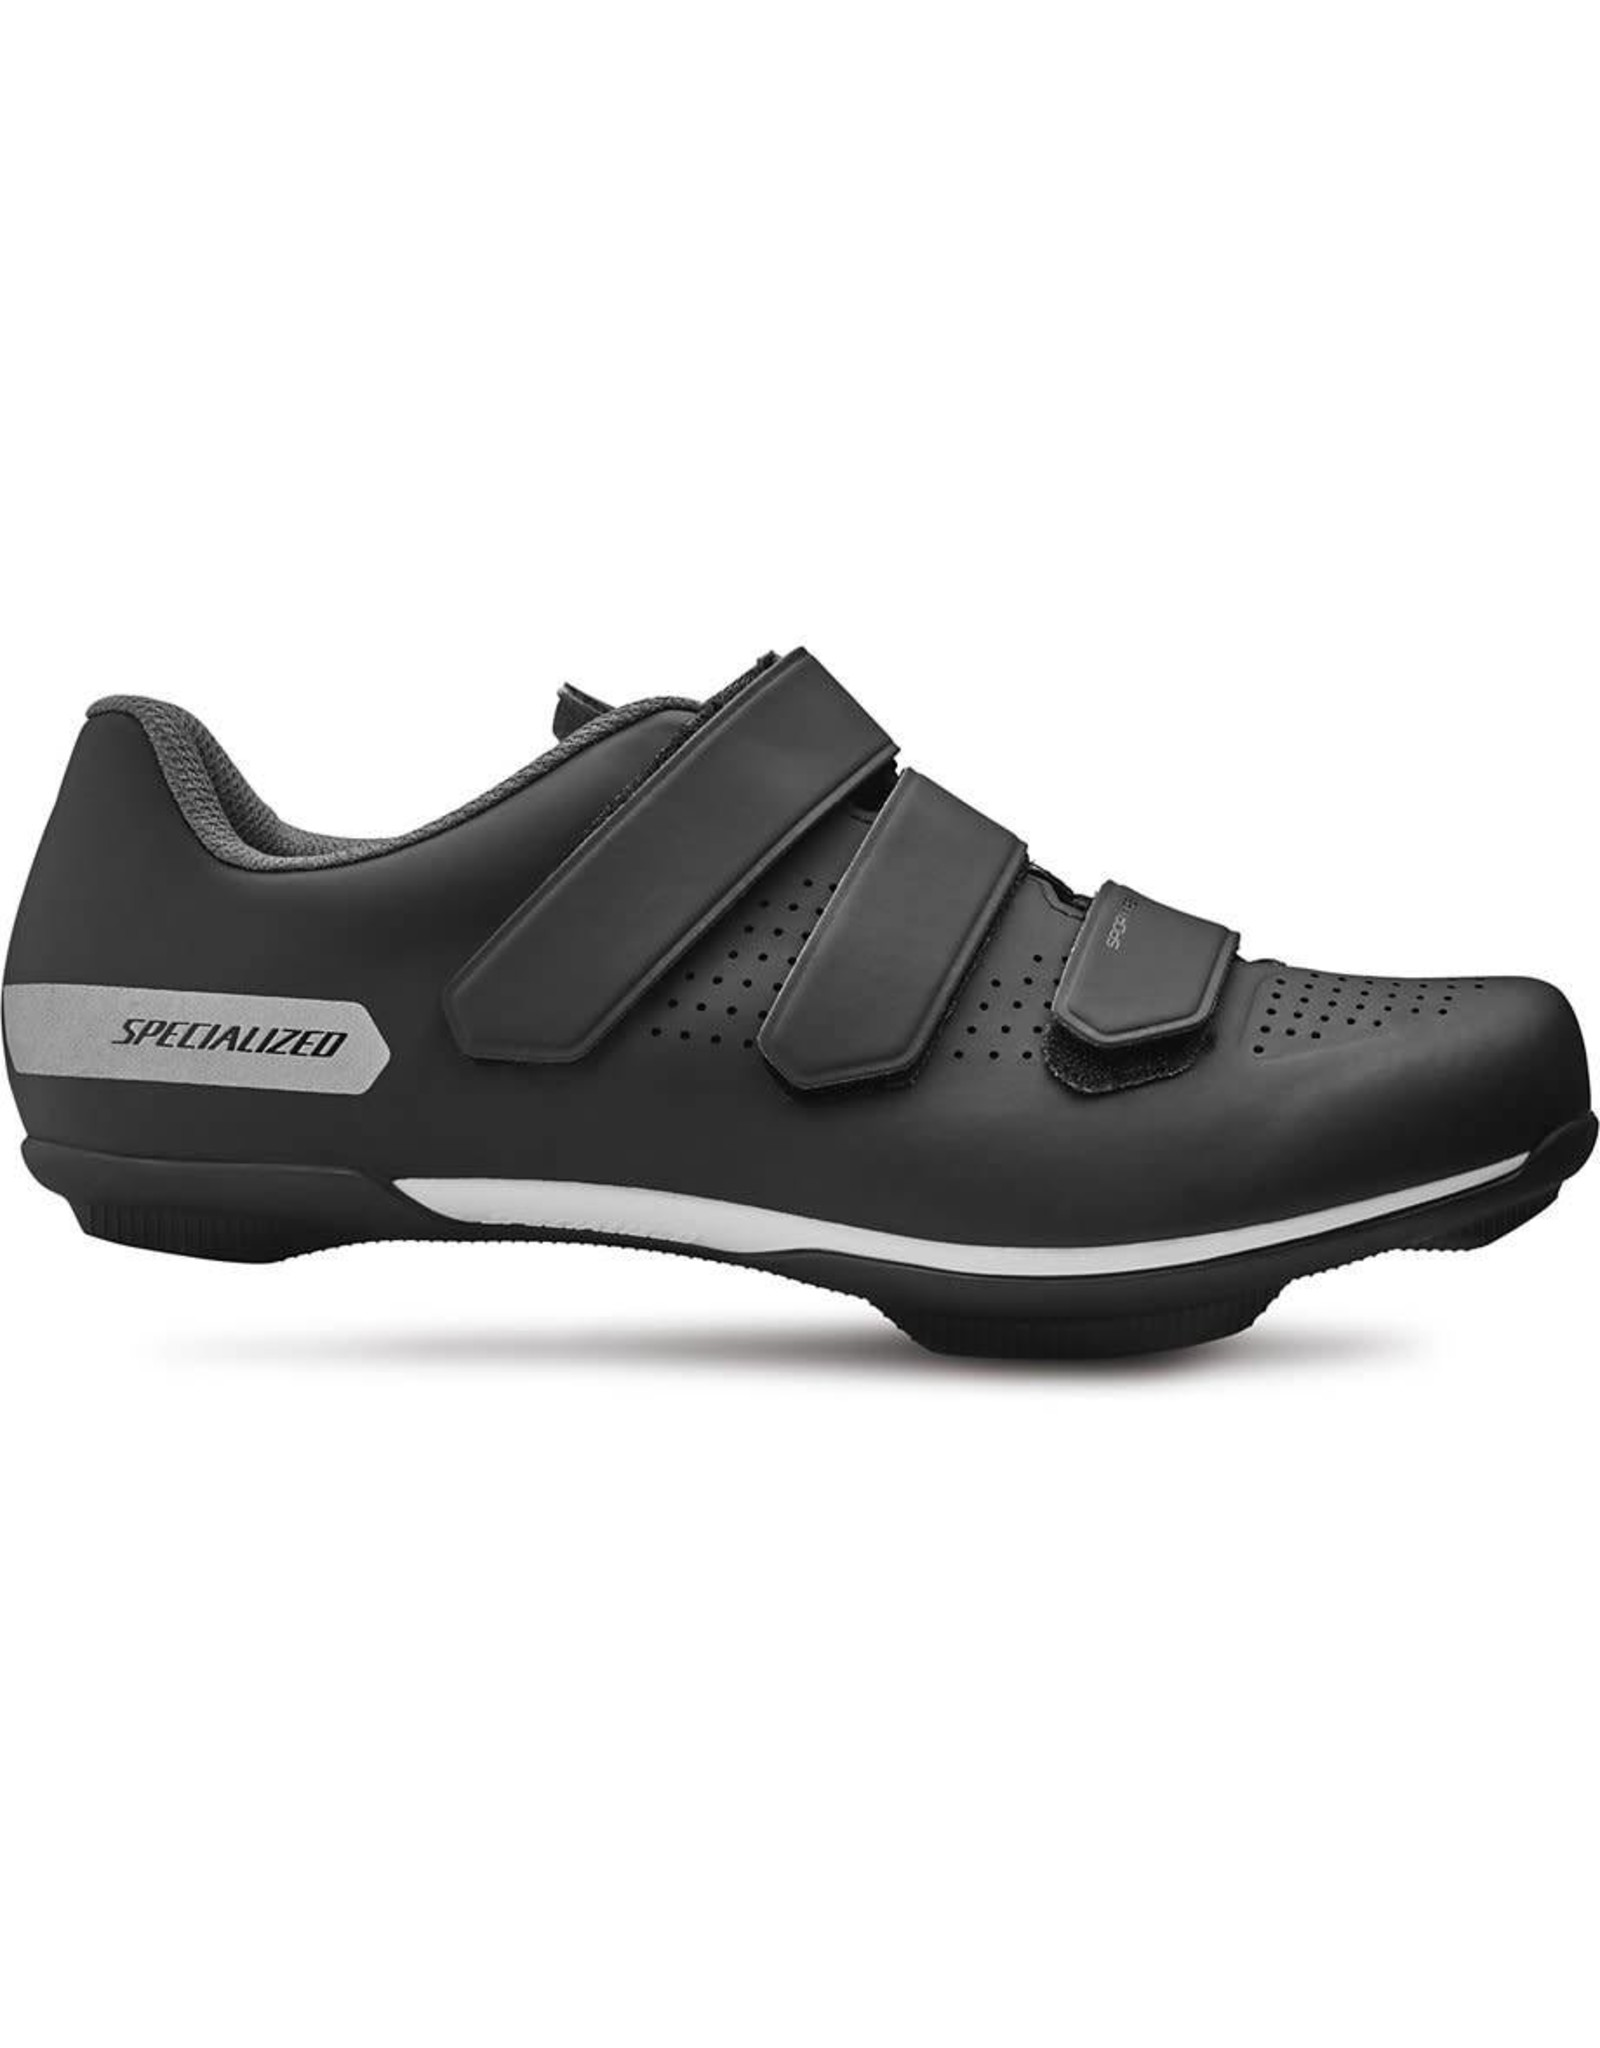 SPECIALIZED Specialized Sport RBX Road Shoe - Black